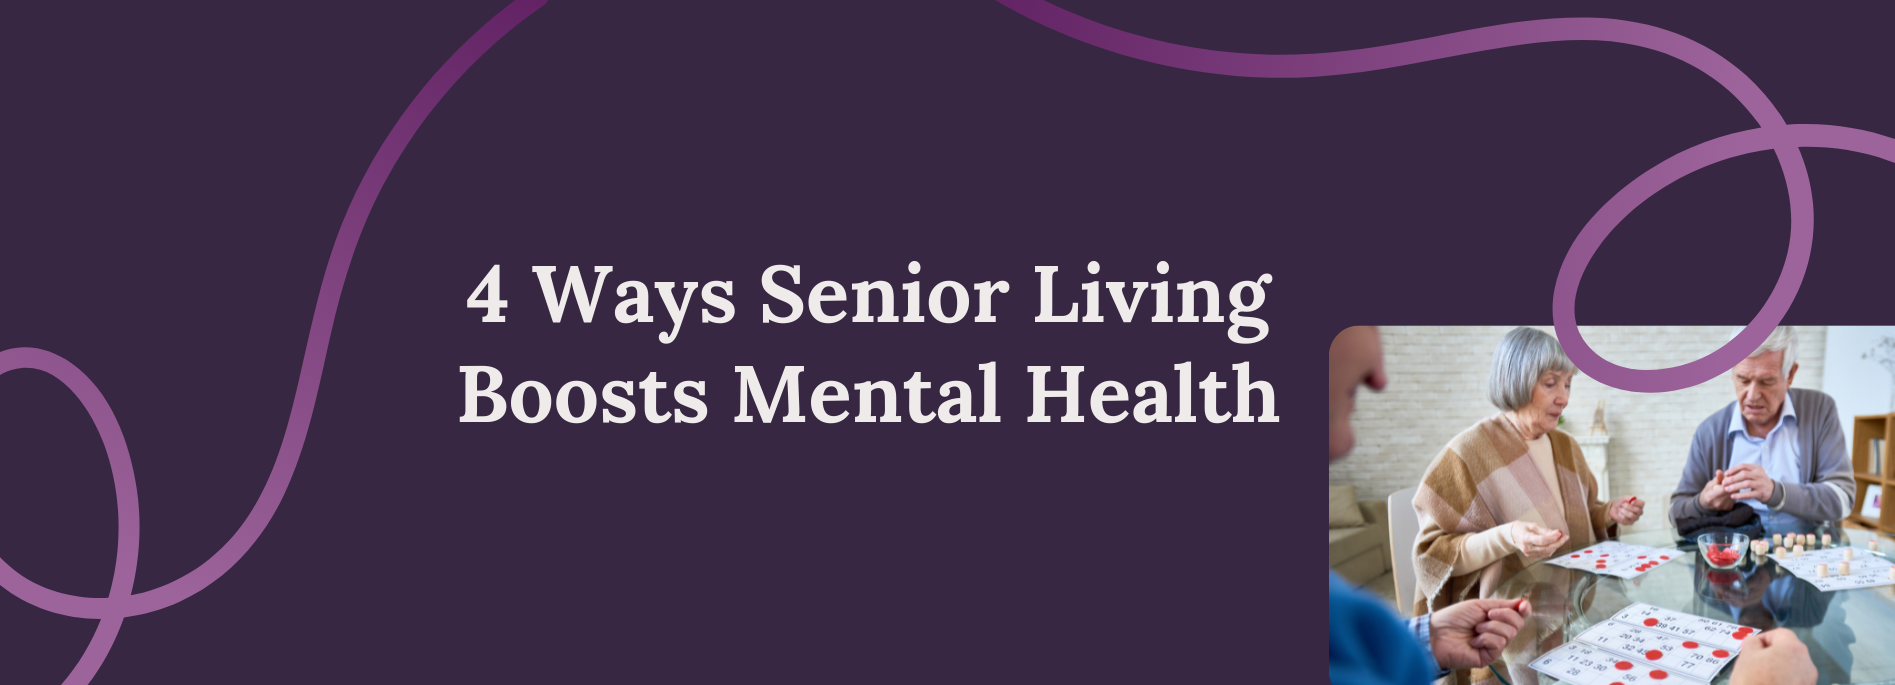 Ways to Boost Your Mental Health For Seniors